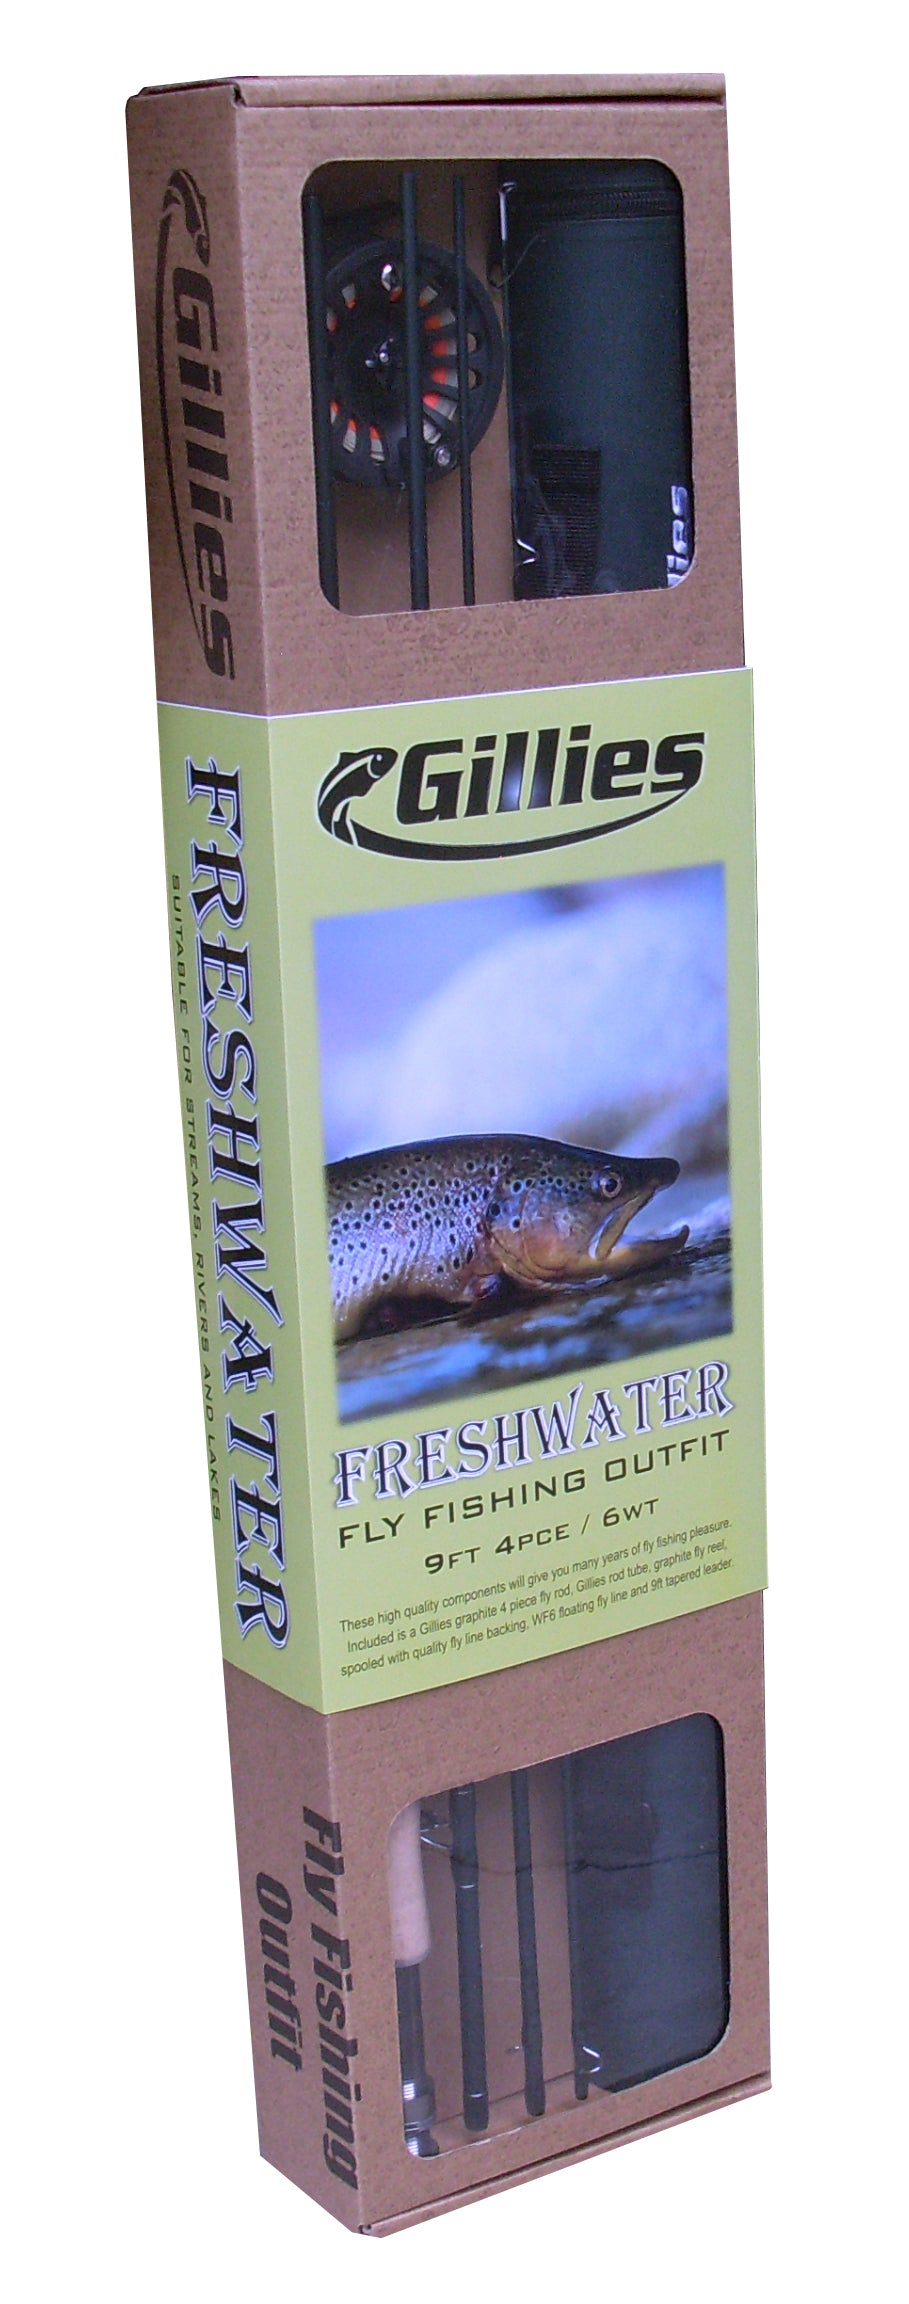 GILLIES FRESHWATER FLY FISHING OUTFIT 6WT 9FT 4PCE